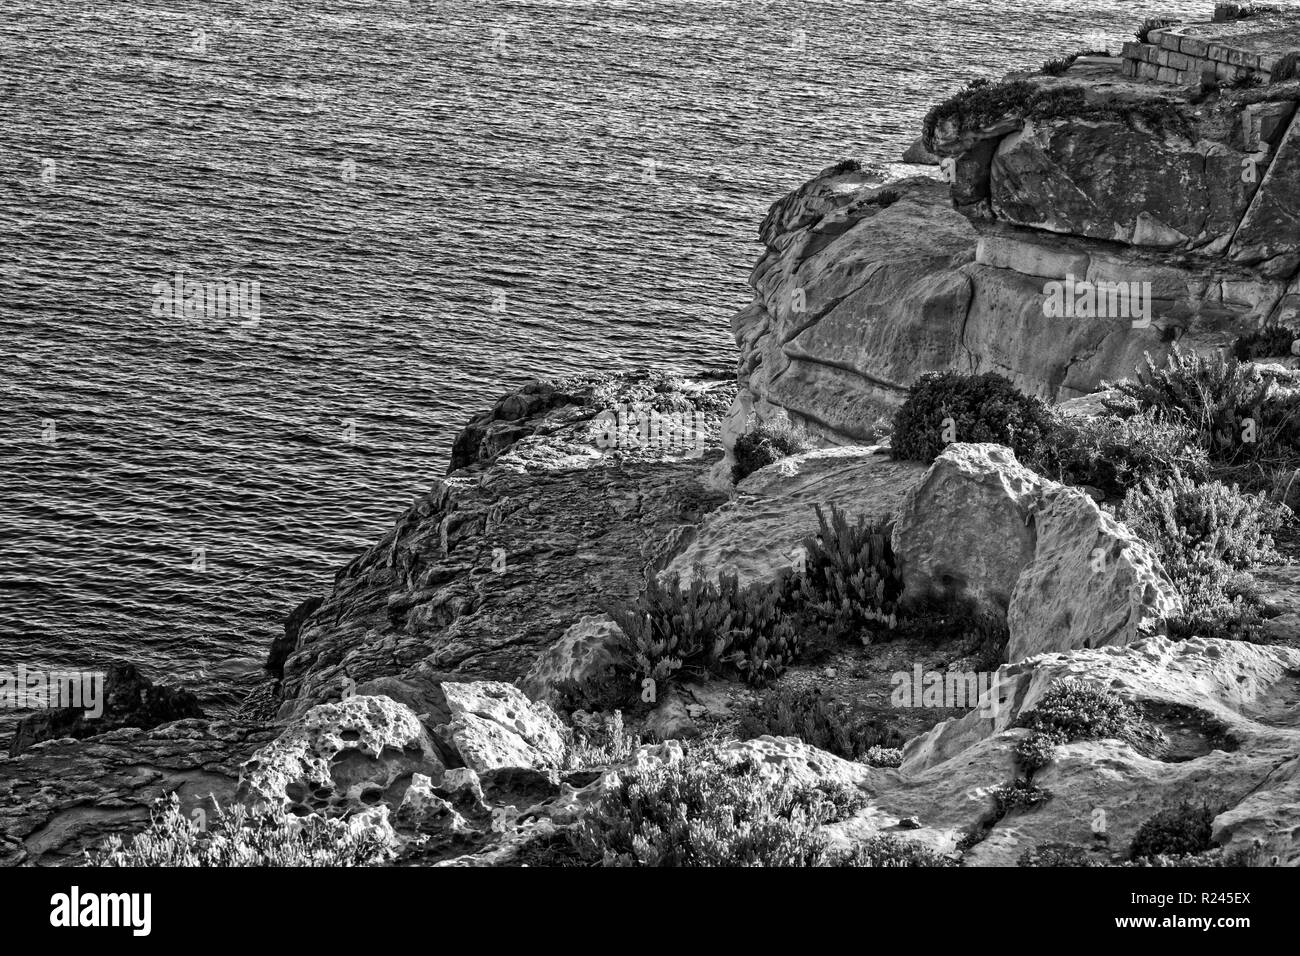 Rocks on the Beach in black and white - Stock Image